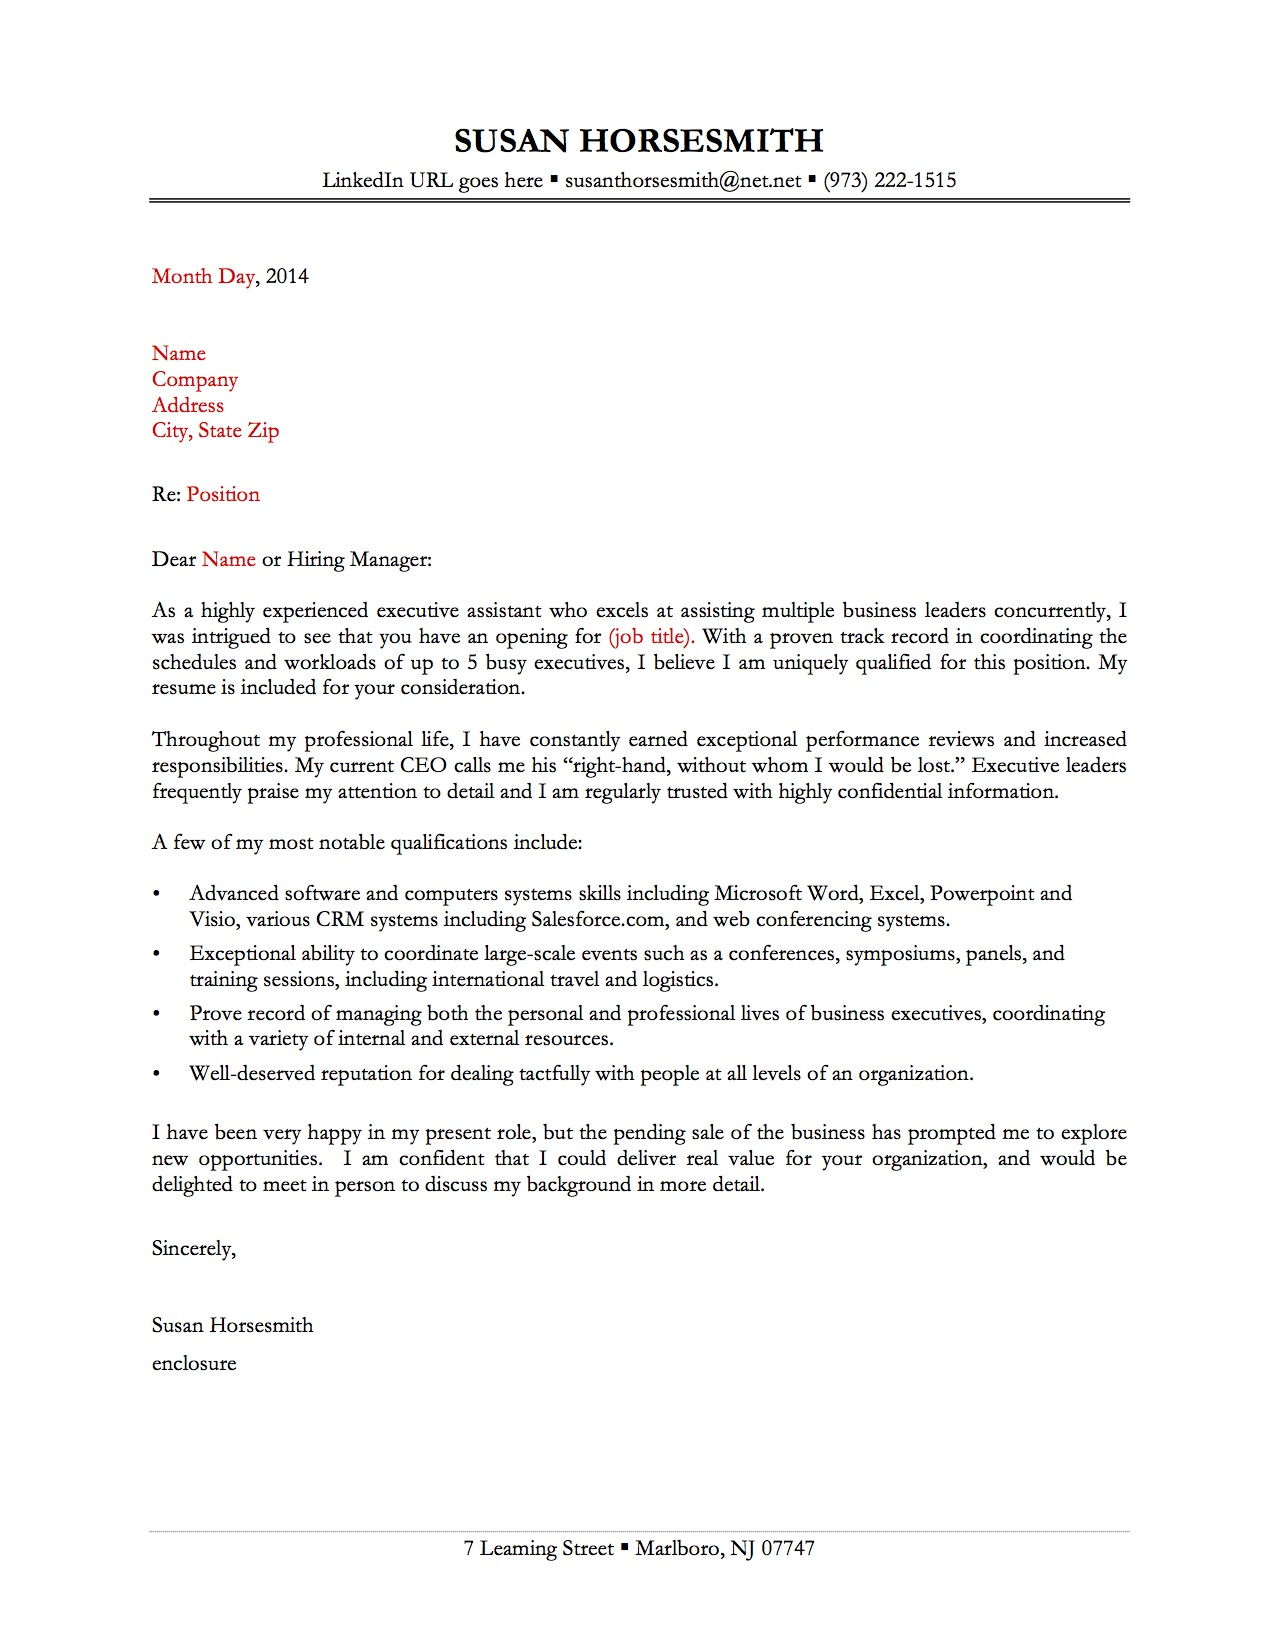 Sample Cover Letter 1  Great Cover Letter Examples